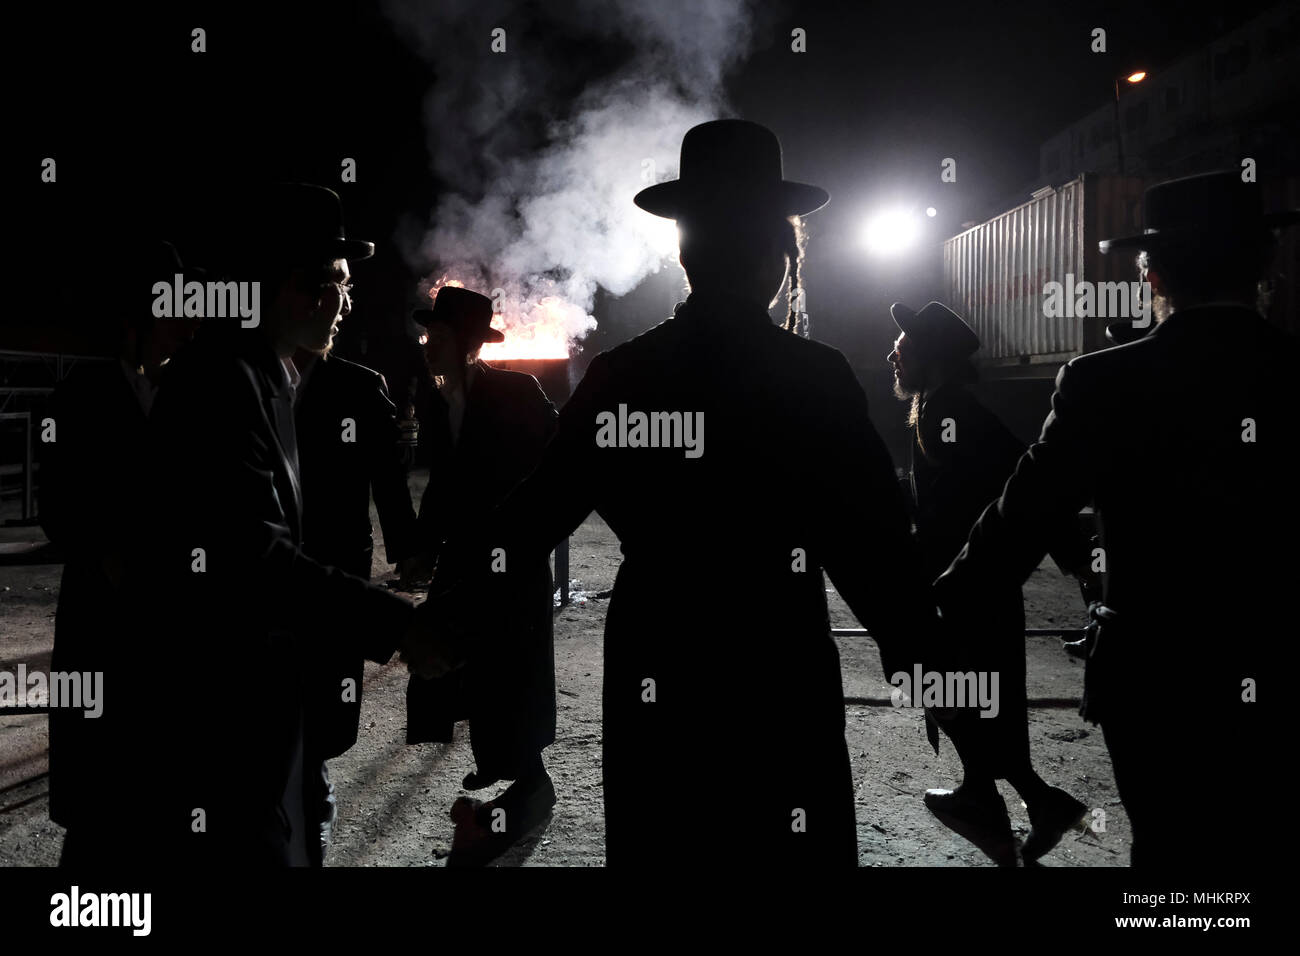 Jerusalem, Israel 02 May 2018. Ultra-Orthodox Jewish men from the Shomrei Emunim Hassidic dynasty dance as they light a giant oil fire in the Geula religious neighborhood during the celebration of Lag BaOmer holiday which marks the celebration, interpreted by some as anniversary of death of Rabbi Shimon bar Yochai, one of Judaism's great sages some 1800 years ago and the day on which he revealed the deepest secrets of kabbalah a landmark text of Jewish mysticism Credit: Eddie Gerald/Alamy Live News - Stock Image